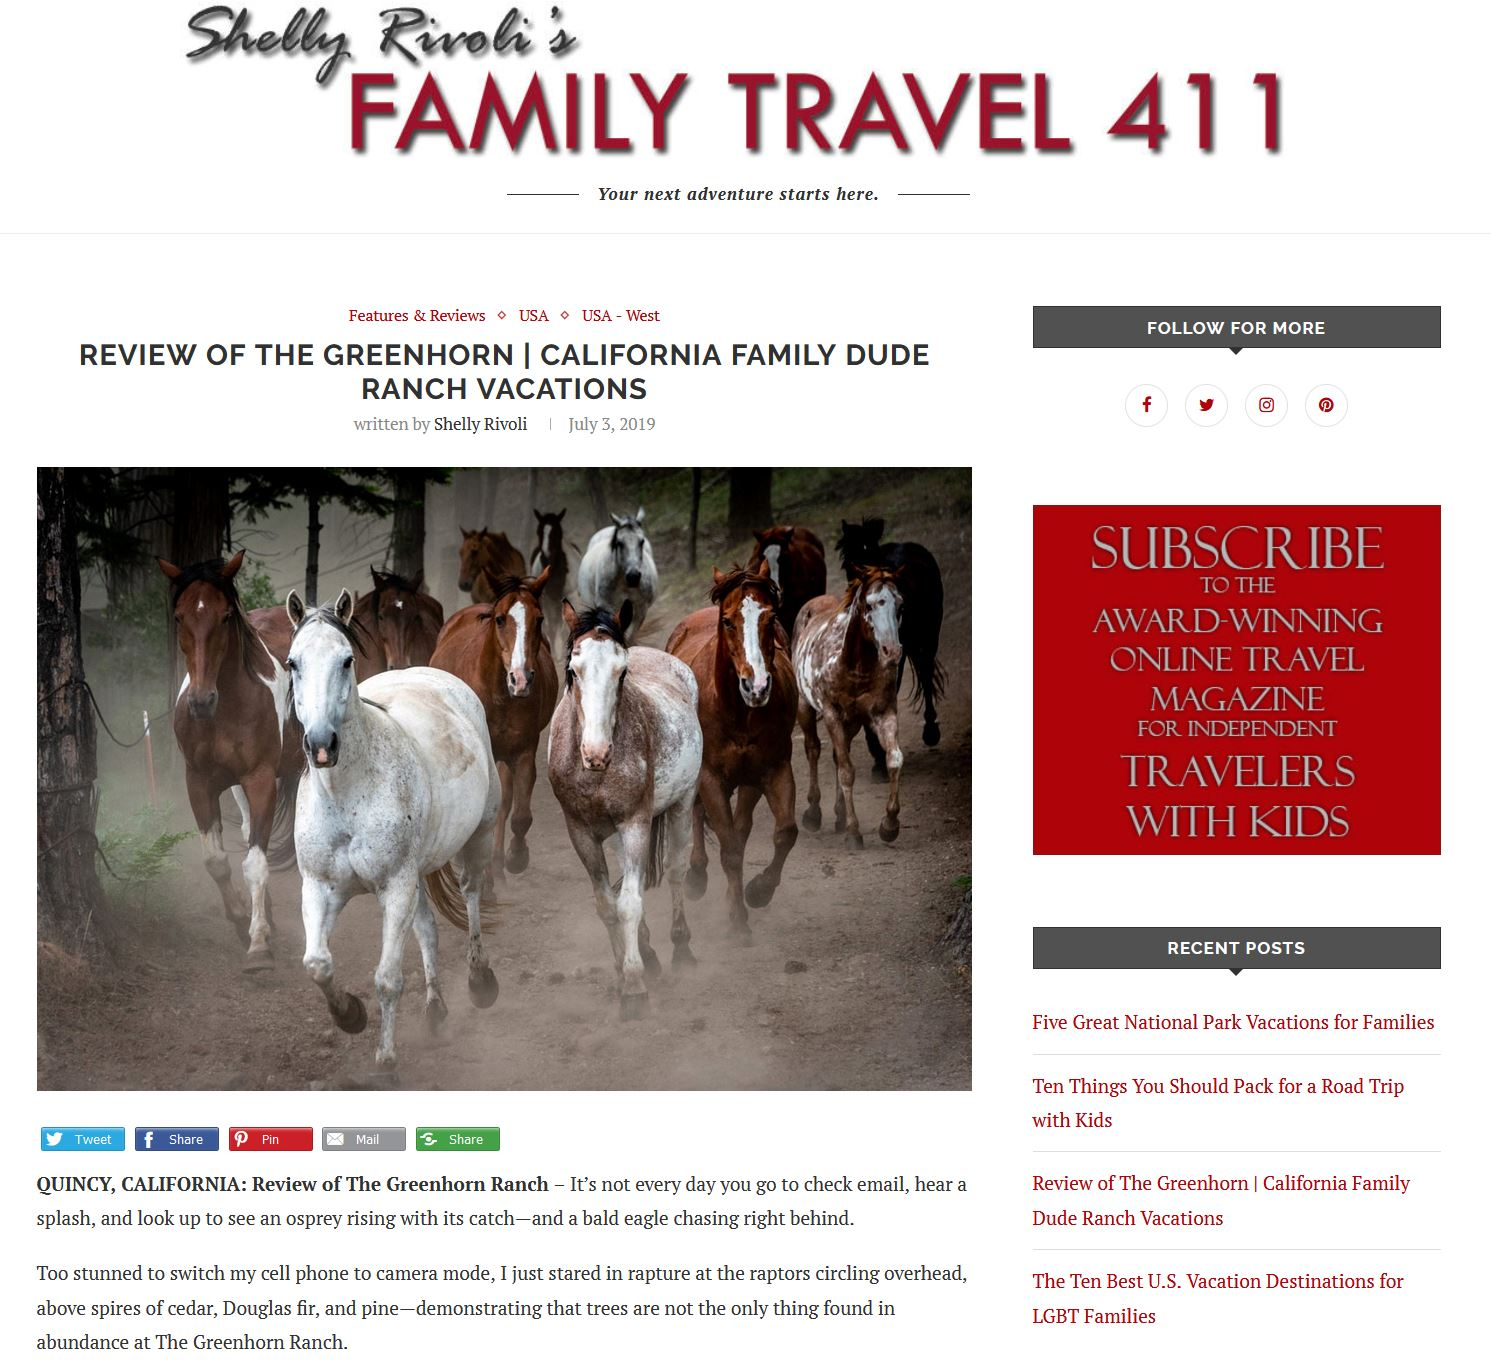 Shelly Rivoli review of the Greenhorn Ranch